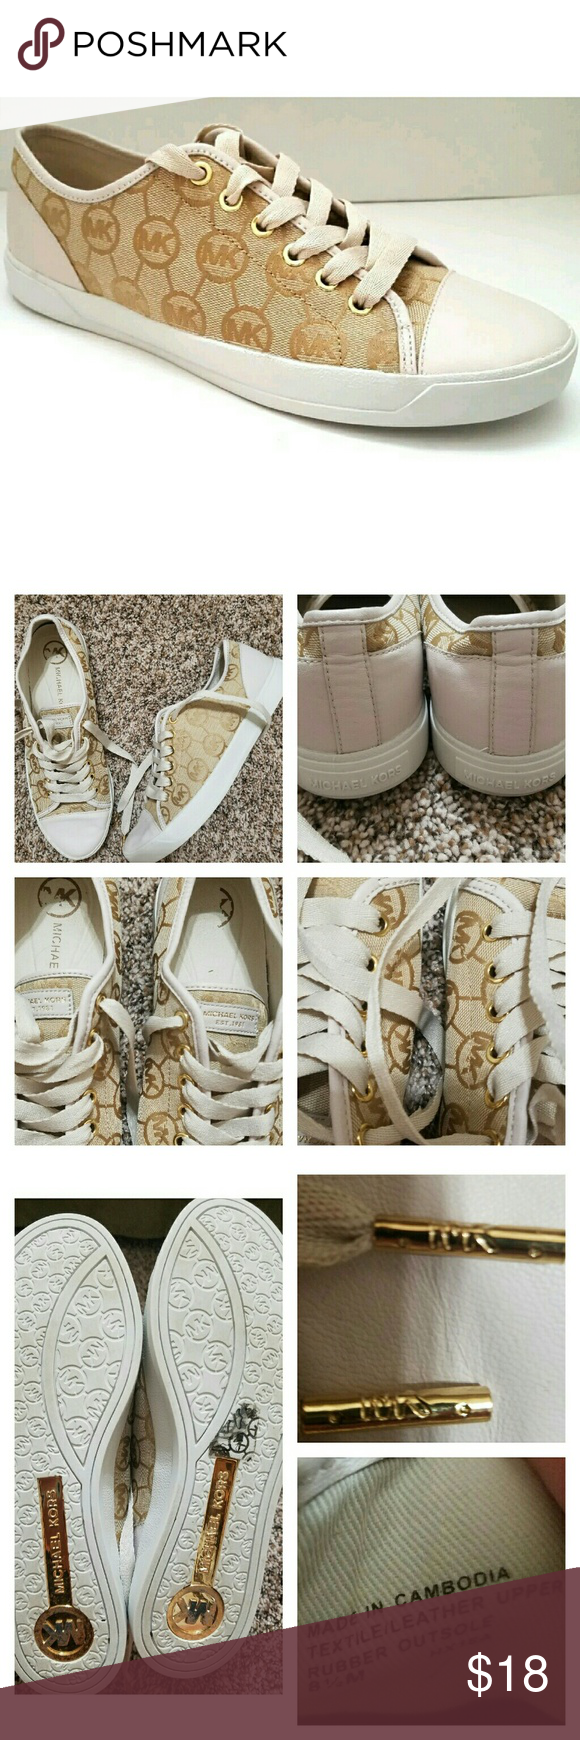 🌻JUST IN🌻MK Logo City Sneakers Trendy MK sneakers in beige, cream, and gold! These cute sneakers even have MK imprinted on the tips of the shoe laces (see Pic 3 top right). These shoes have been washed and air dried. Rubber soles. Embossed fabric on main part of shoe. Fit is TTS, in my opinion. Very good condition! I have tried to take multiple pics that show the true condition of these shoes. MICHAEL Michael Kors Shoes Sneakers